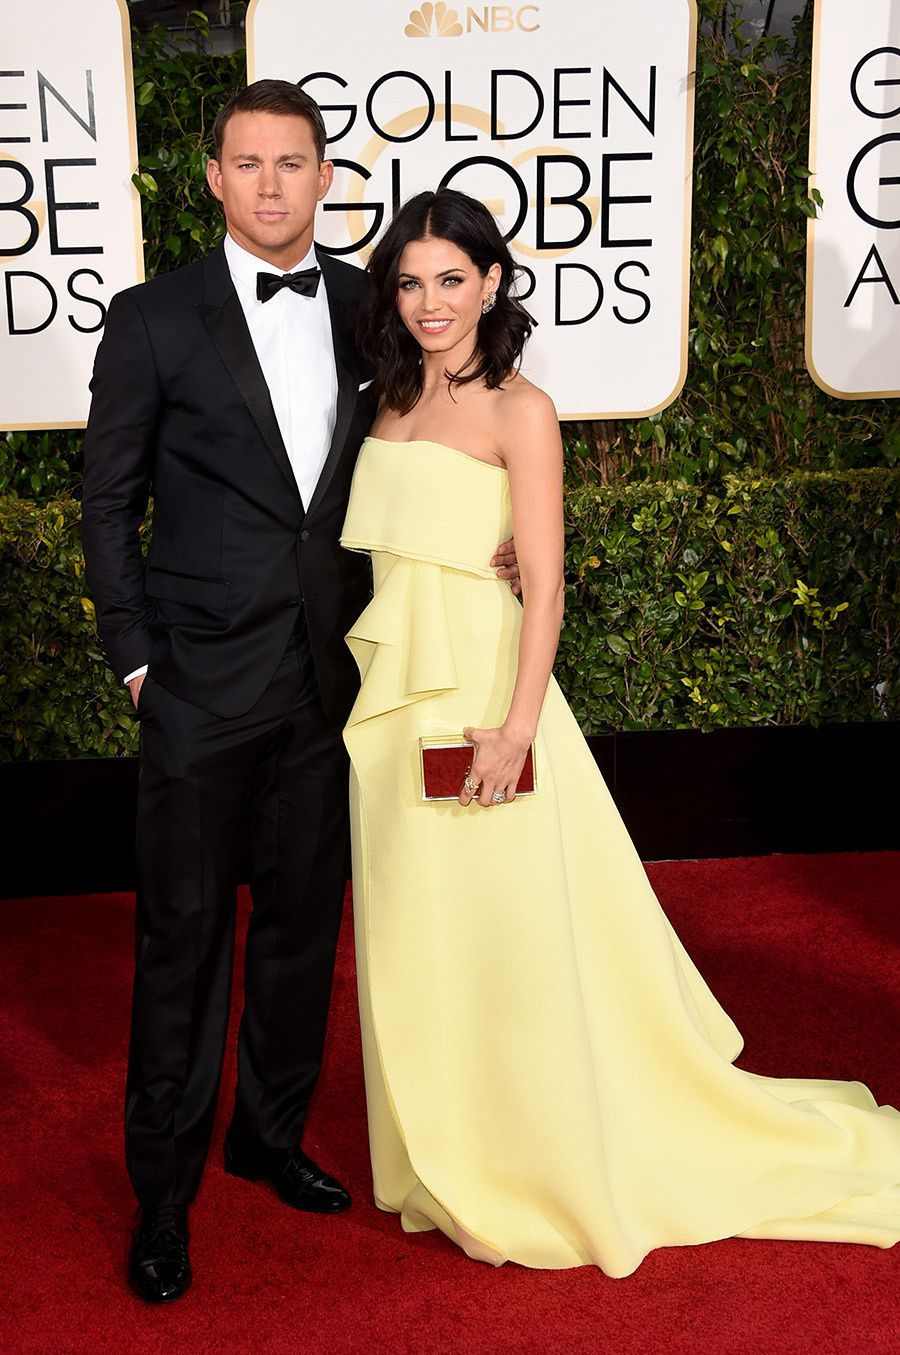 Channing Tatum et son épouse Jenna Dewan-Tatum de Witches of East End - © Getty